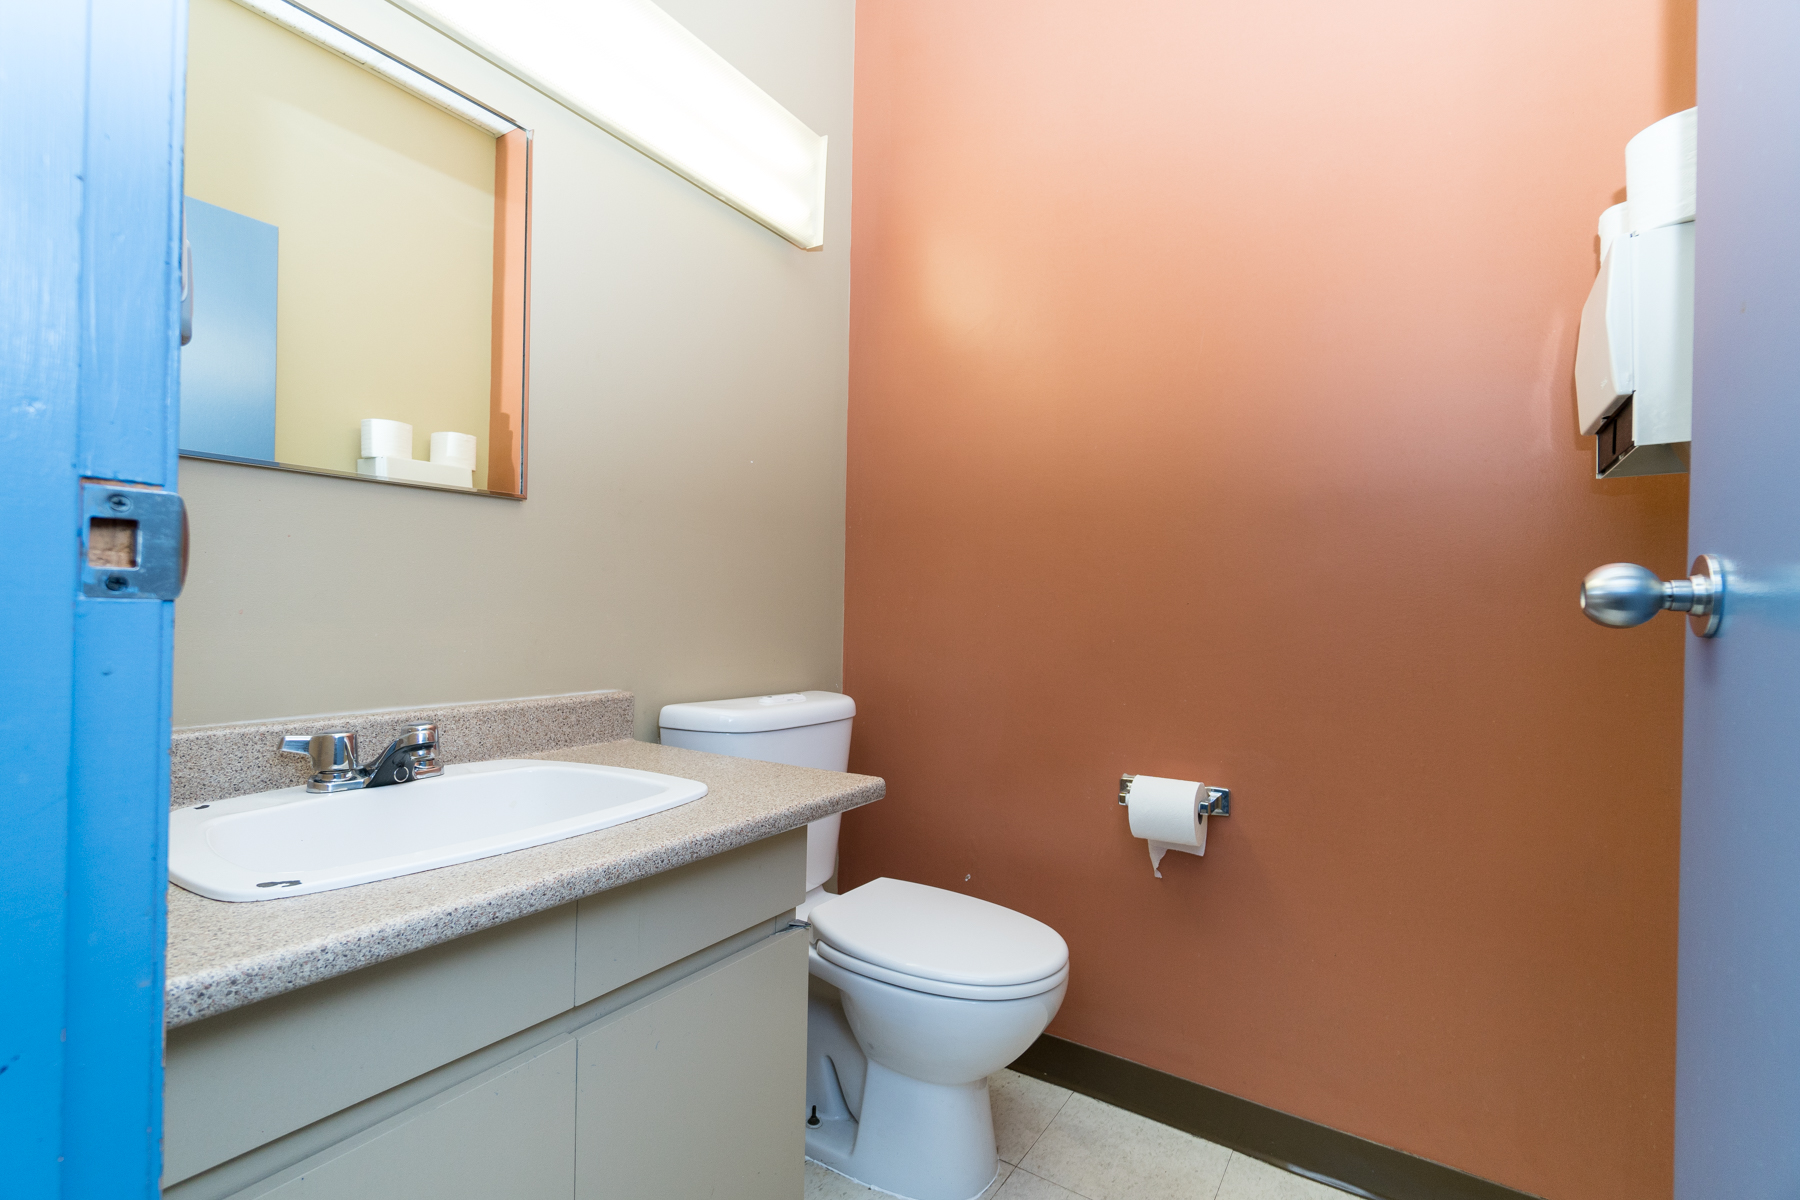 Several washrooms on each floor offer convenient use